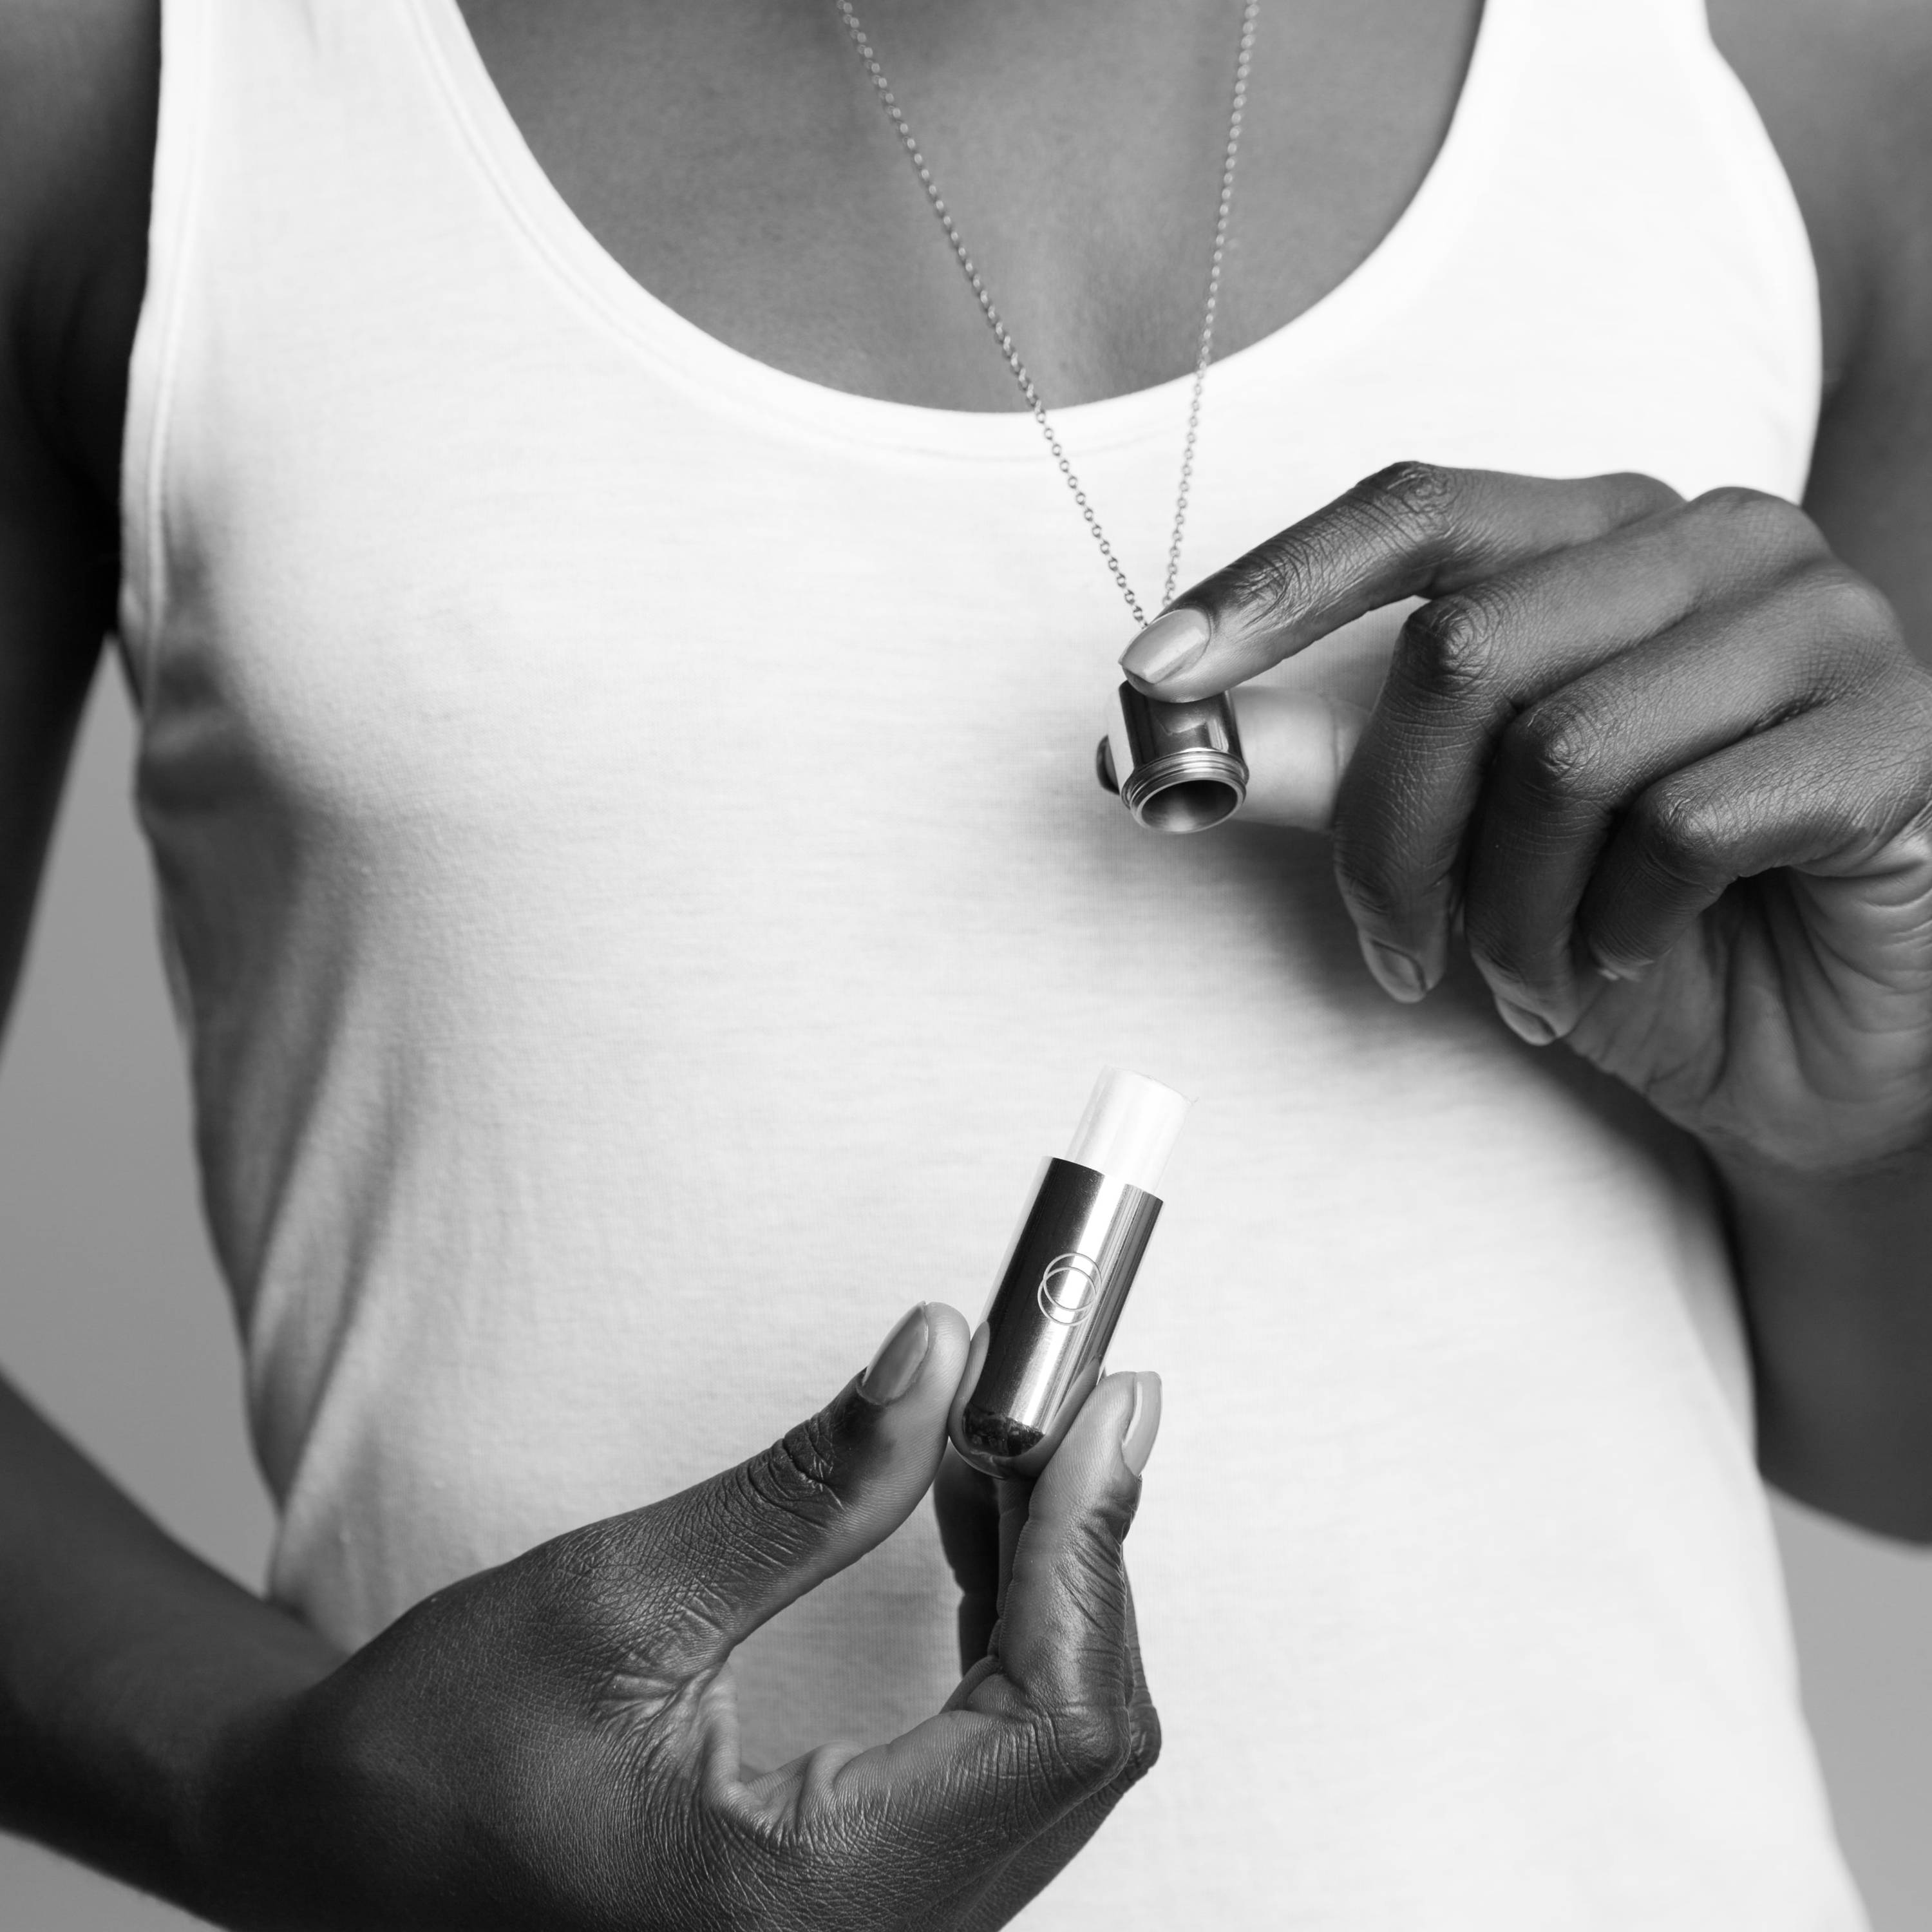 A woman holds an unscrewed Cora Fearless Necklace around her neck